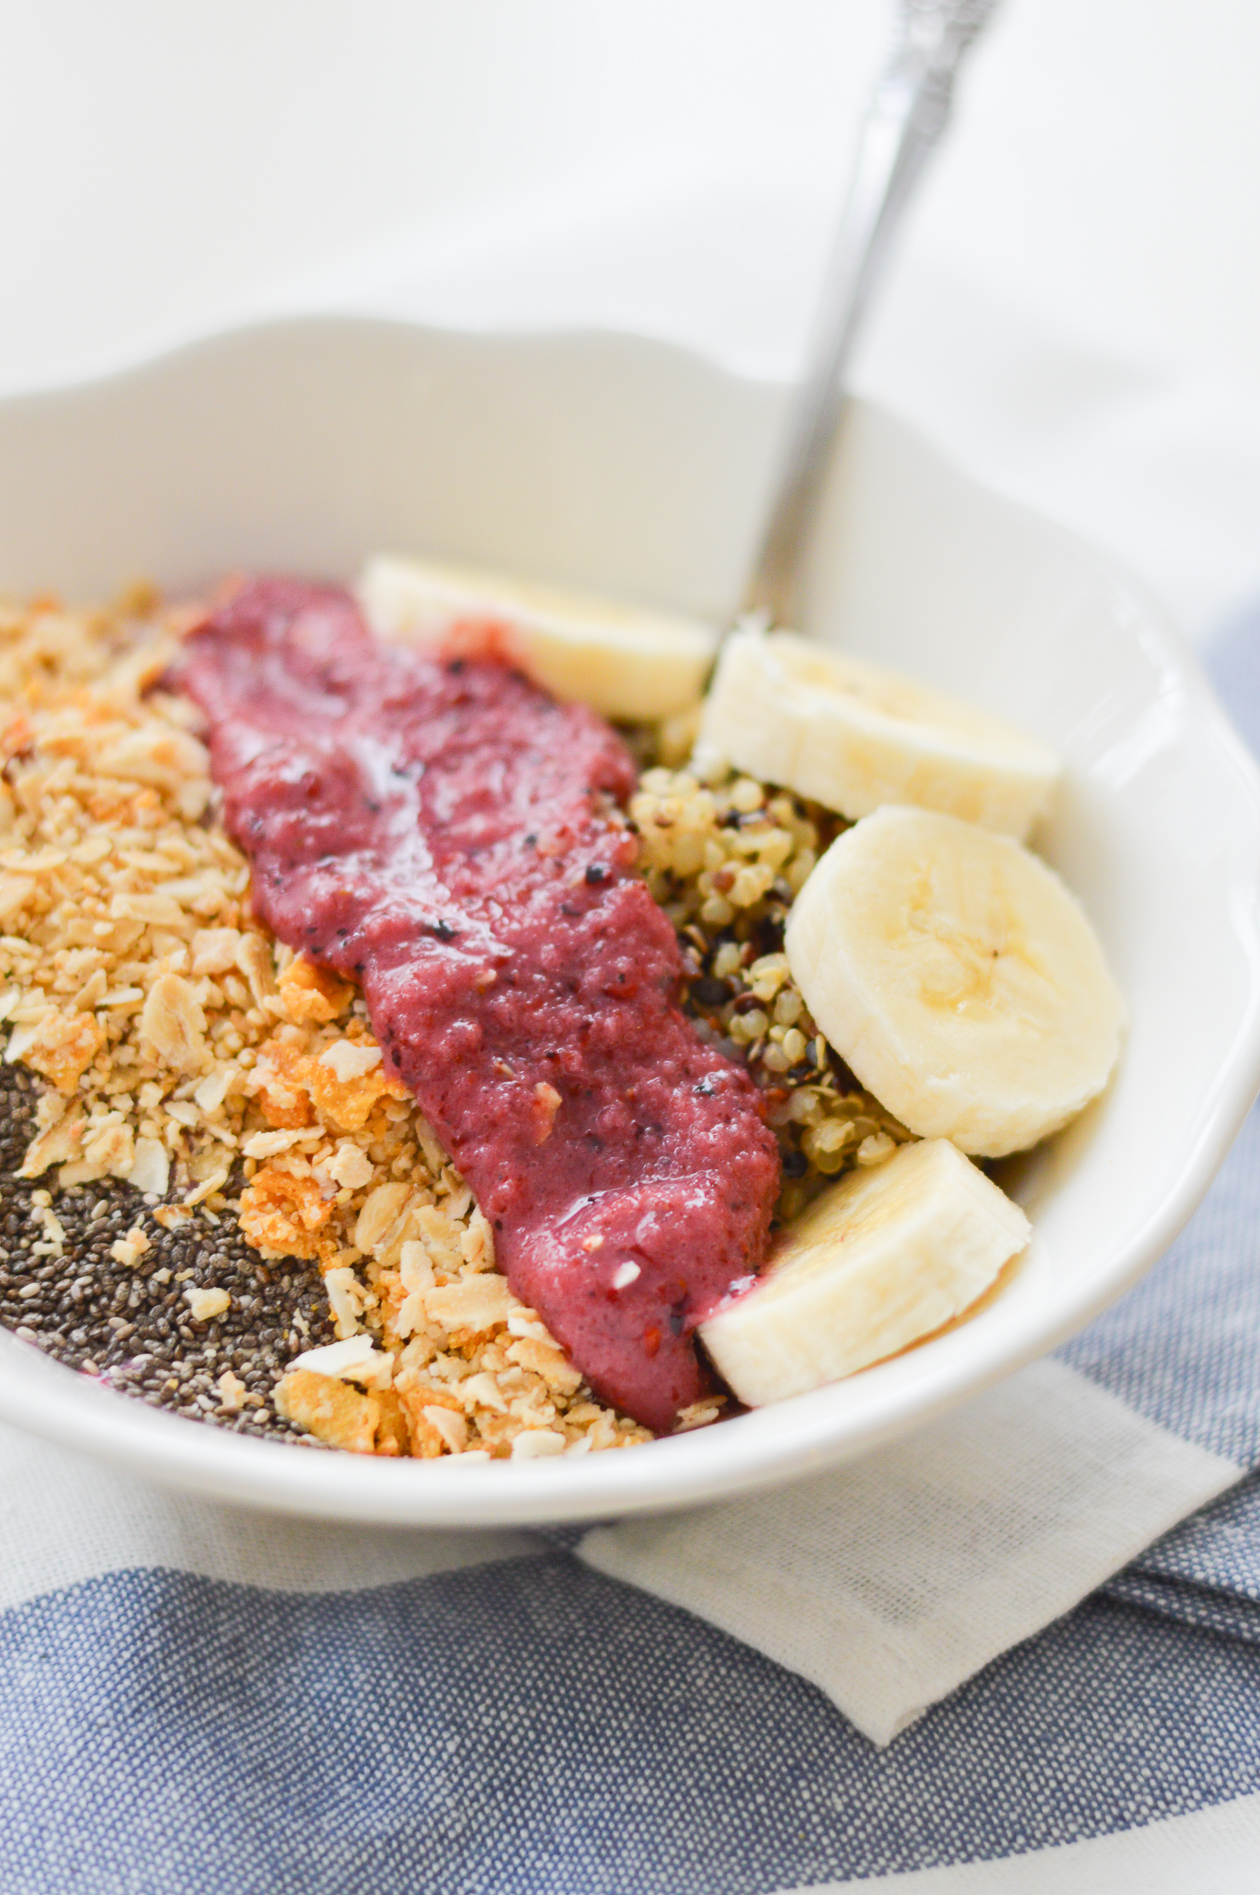 Berry Quinoa Breakfast Bowl | @dcgirlinpearls